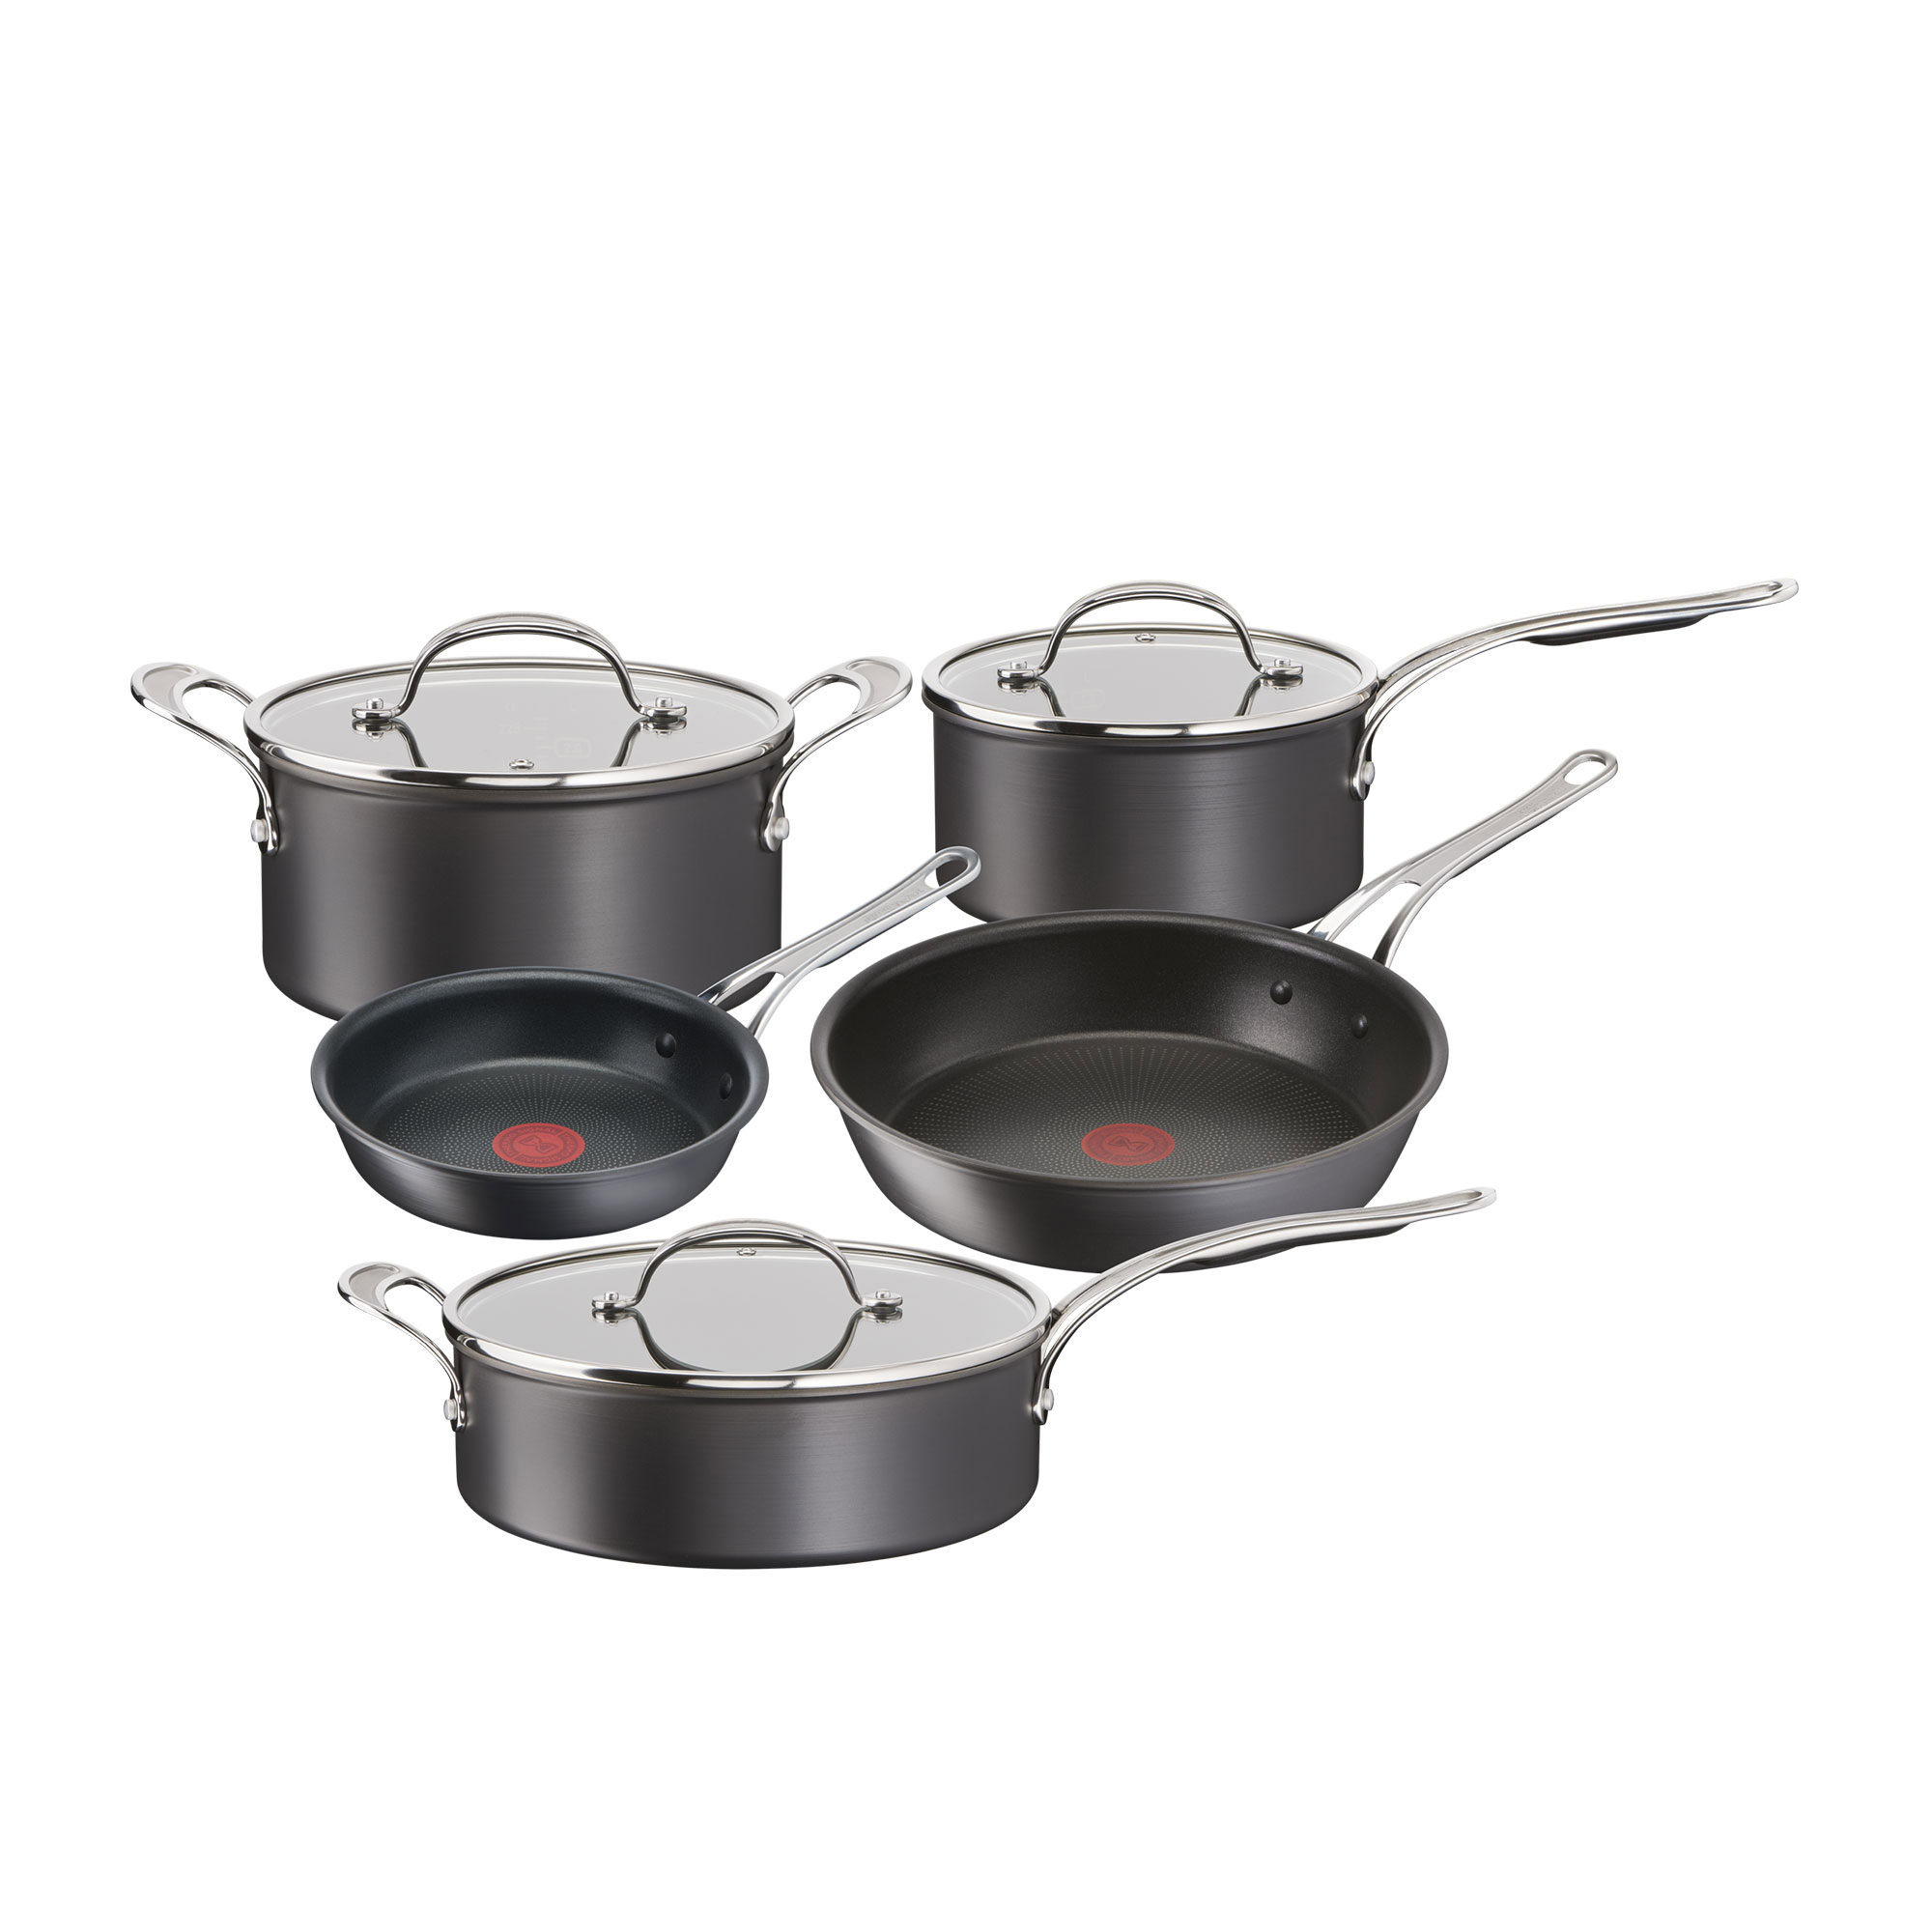 Jamie Oliver Cook's Classic 5pc Hard Anodised Induction Cookware Set